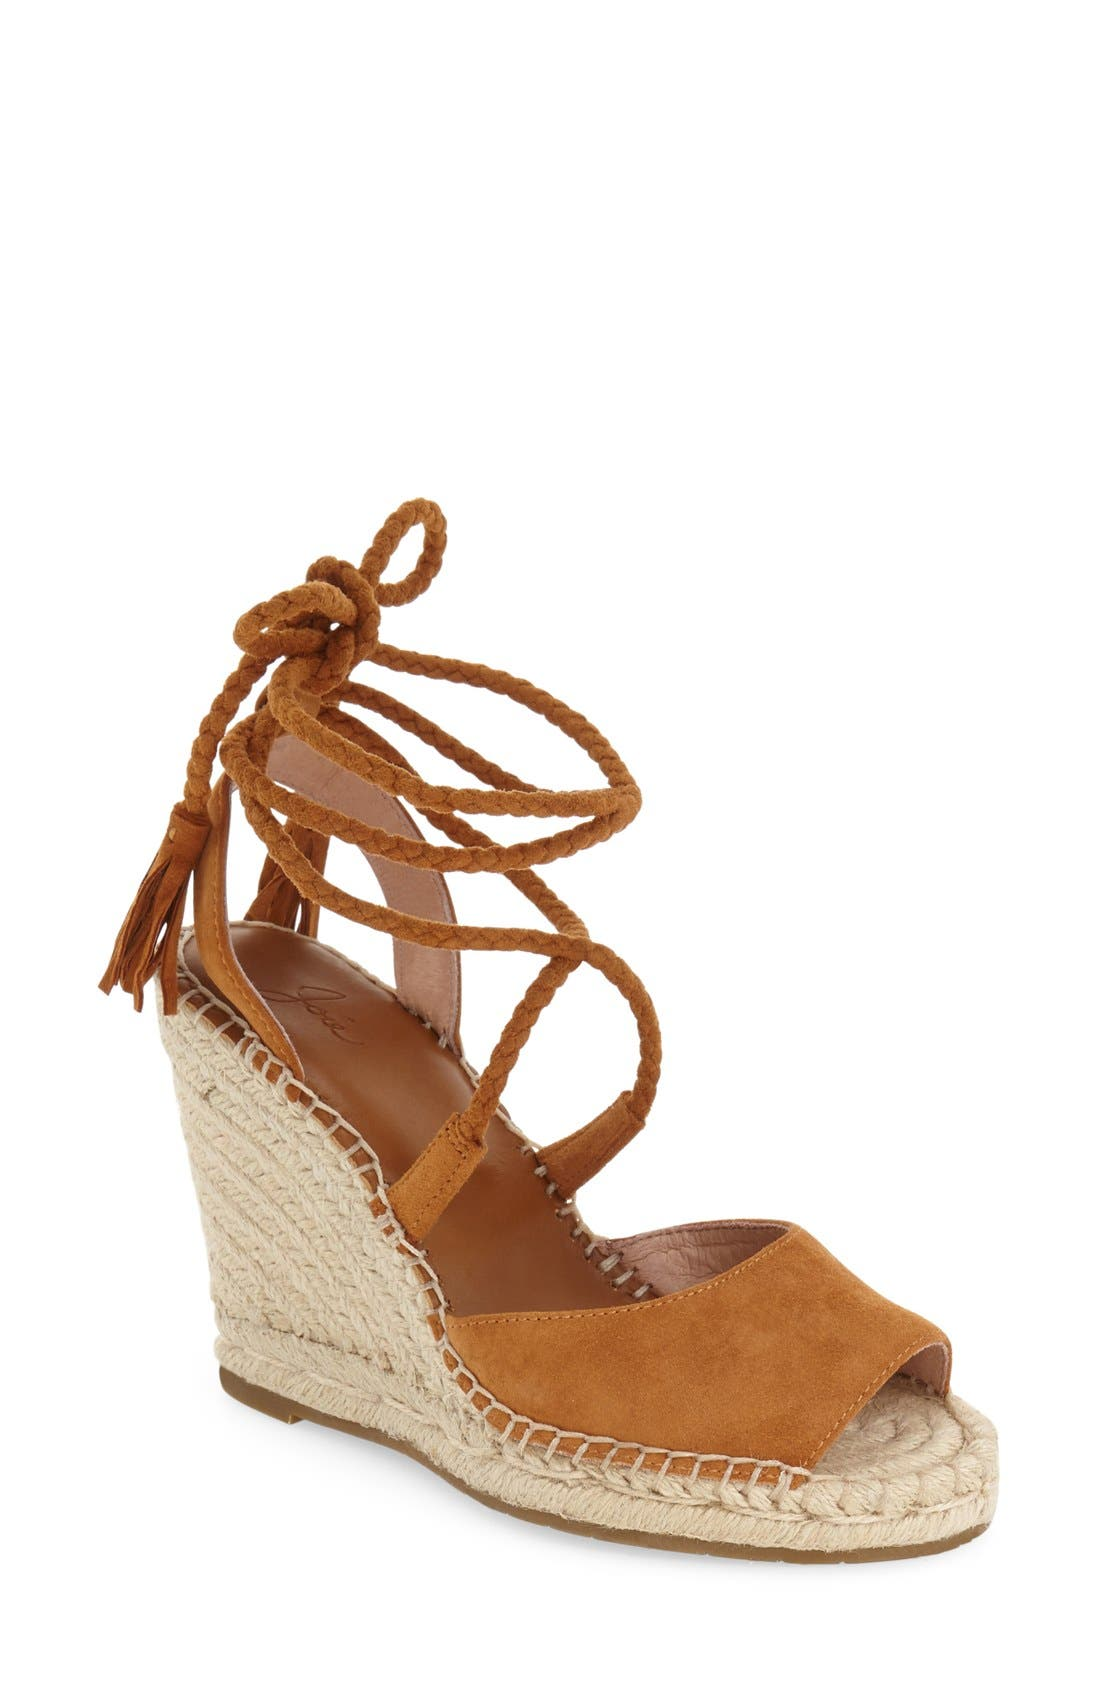 'Phyllis' Espadrille Wedge,                             Main thumbnail 1, color,                             219